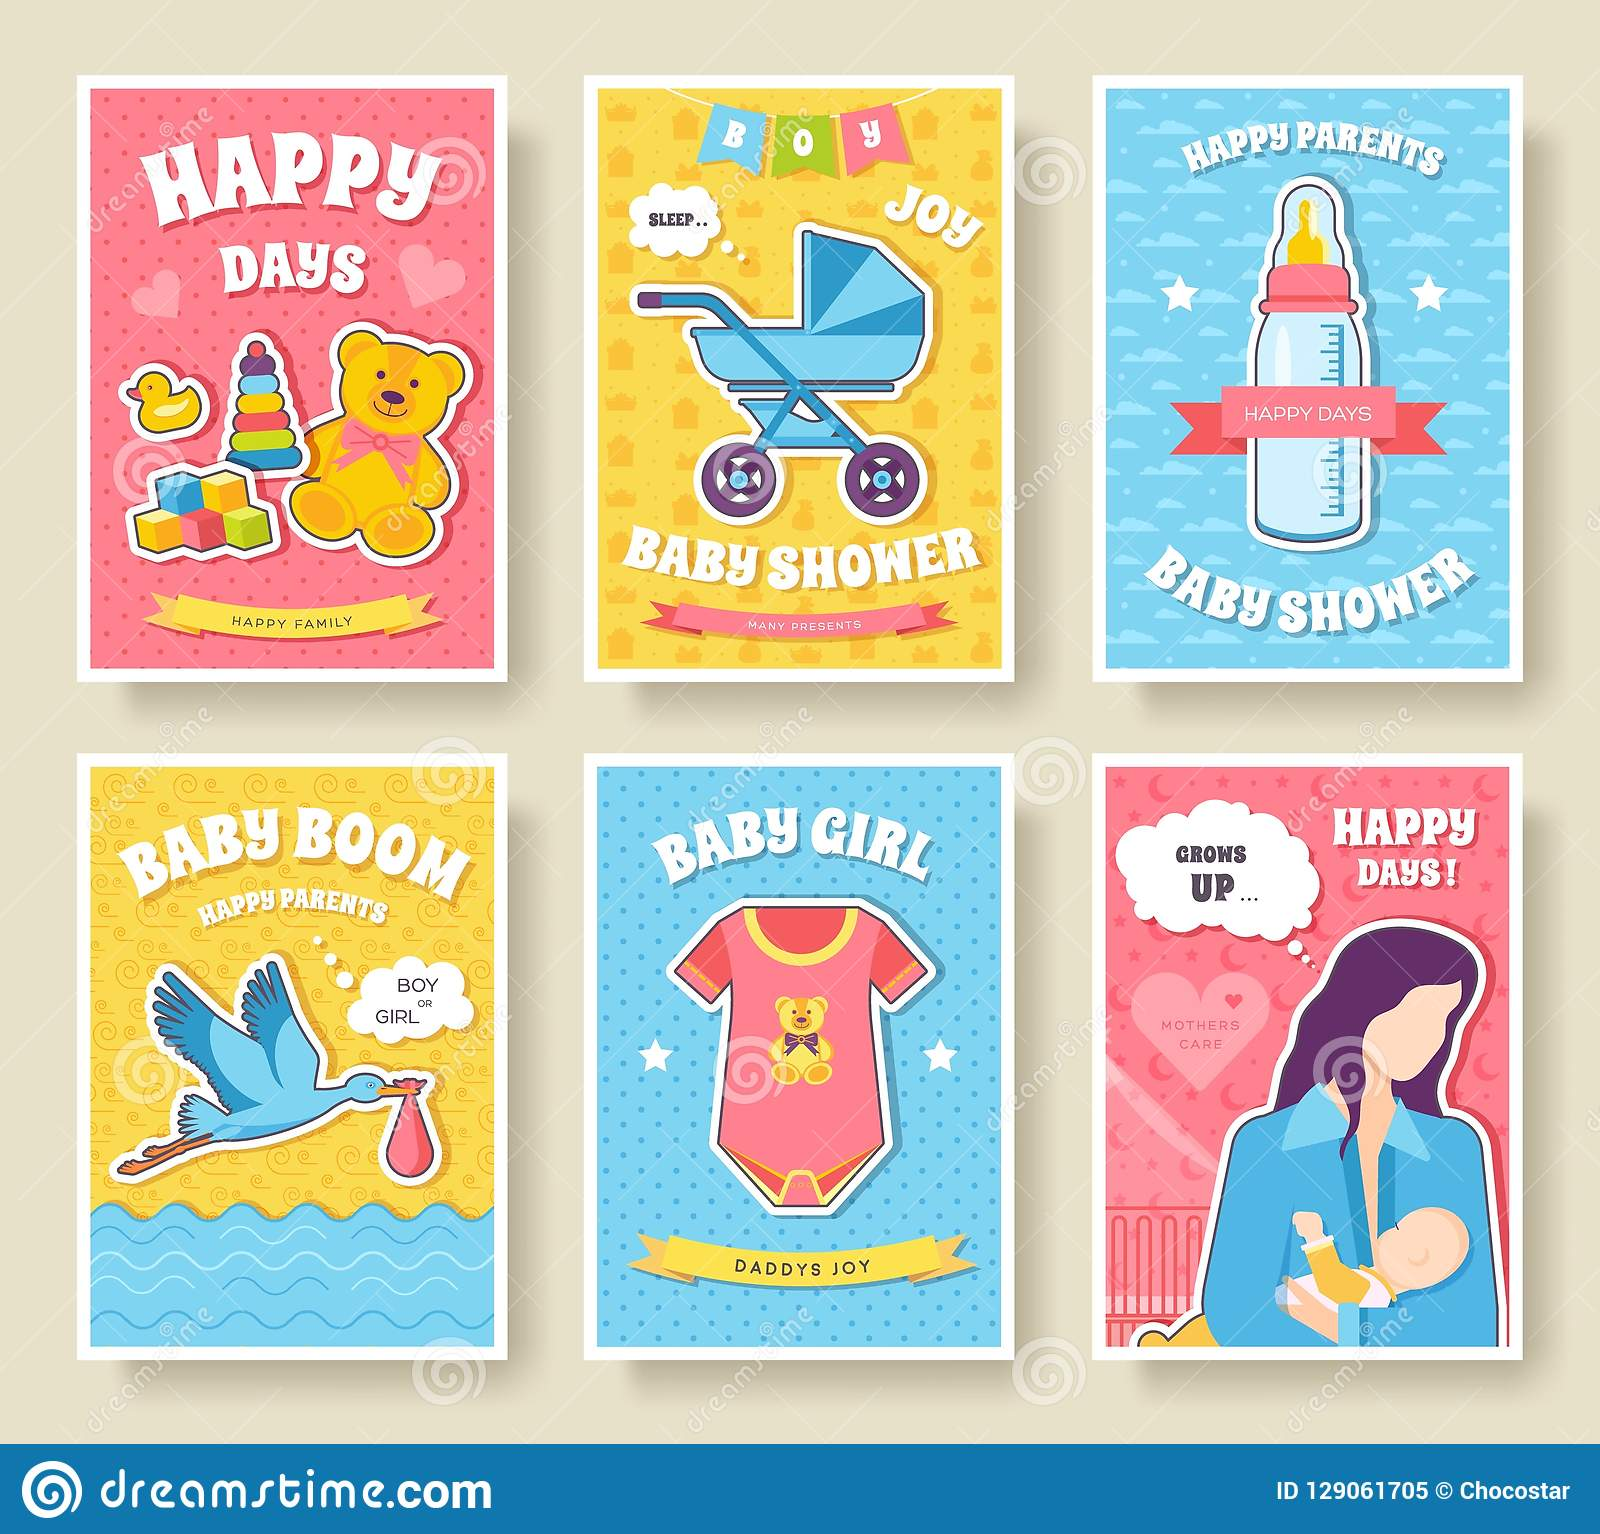 World Breastfeeding Week Cards Set Kids Elements Of Flyear Magazines Posters Book Cover Banners Devices Infographic Concept Stock Illustration Illustration Of Breast Dummy 129061705